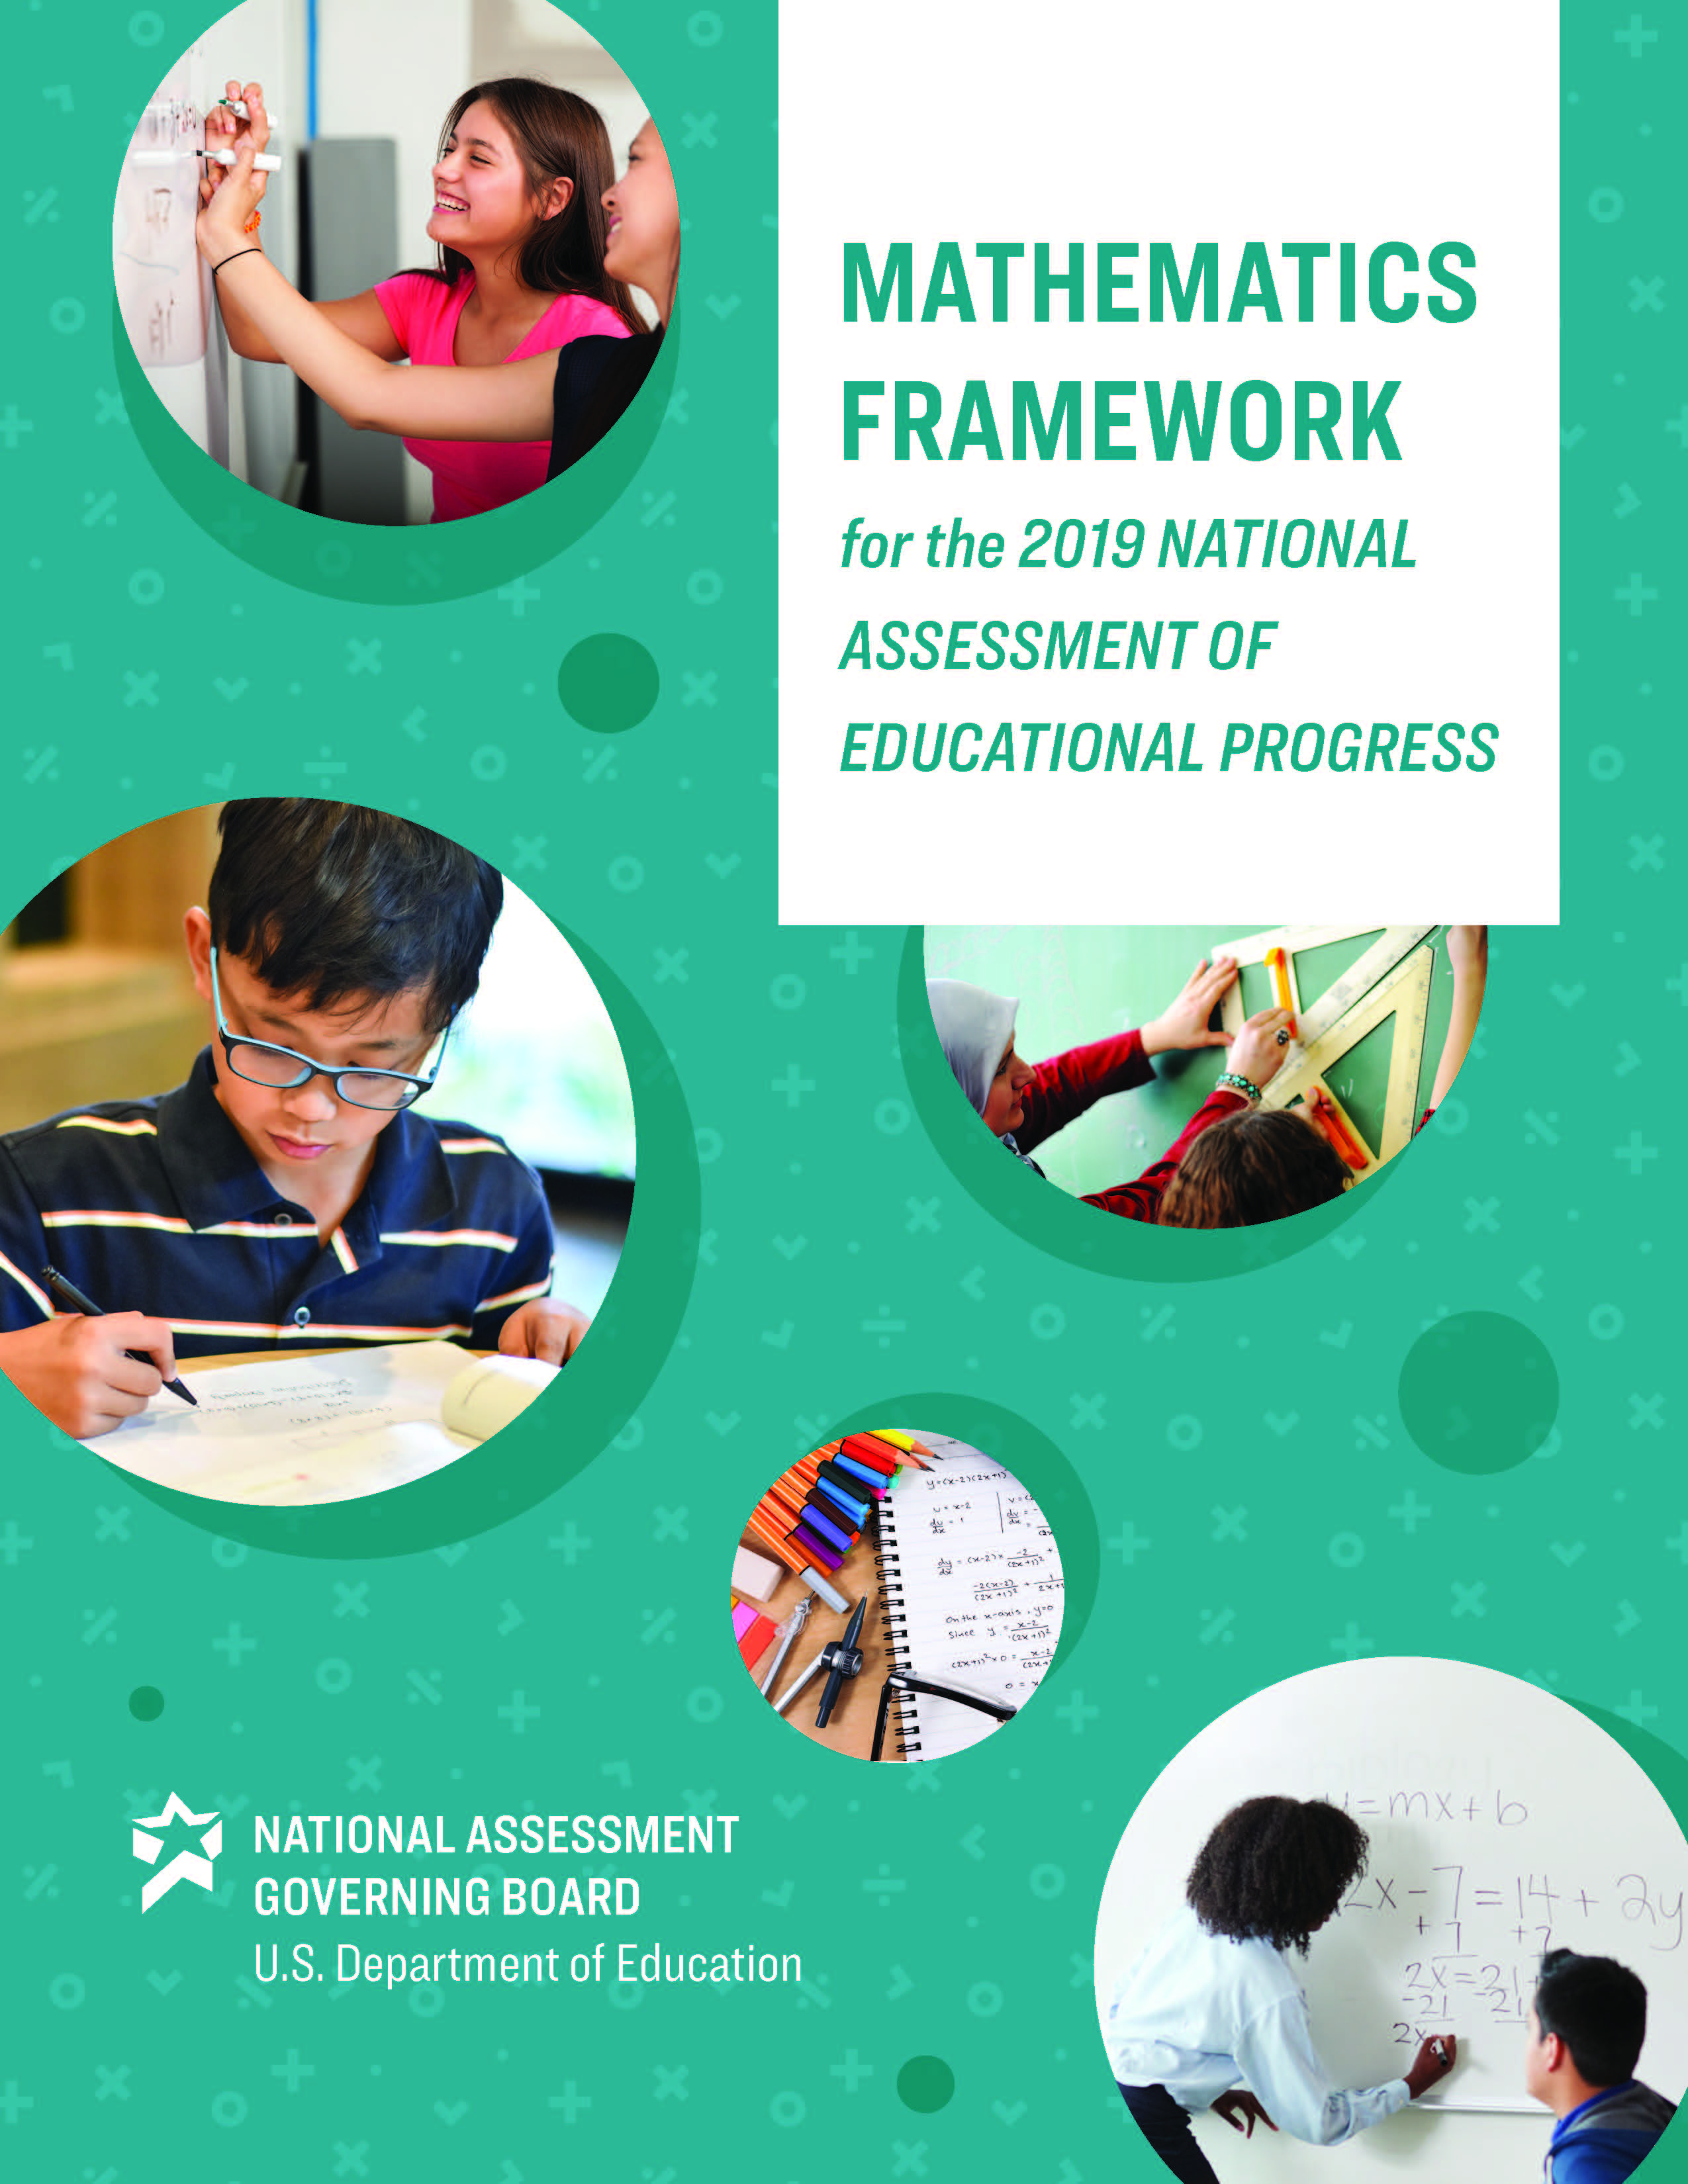 2019 Mathematics Framework